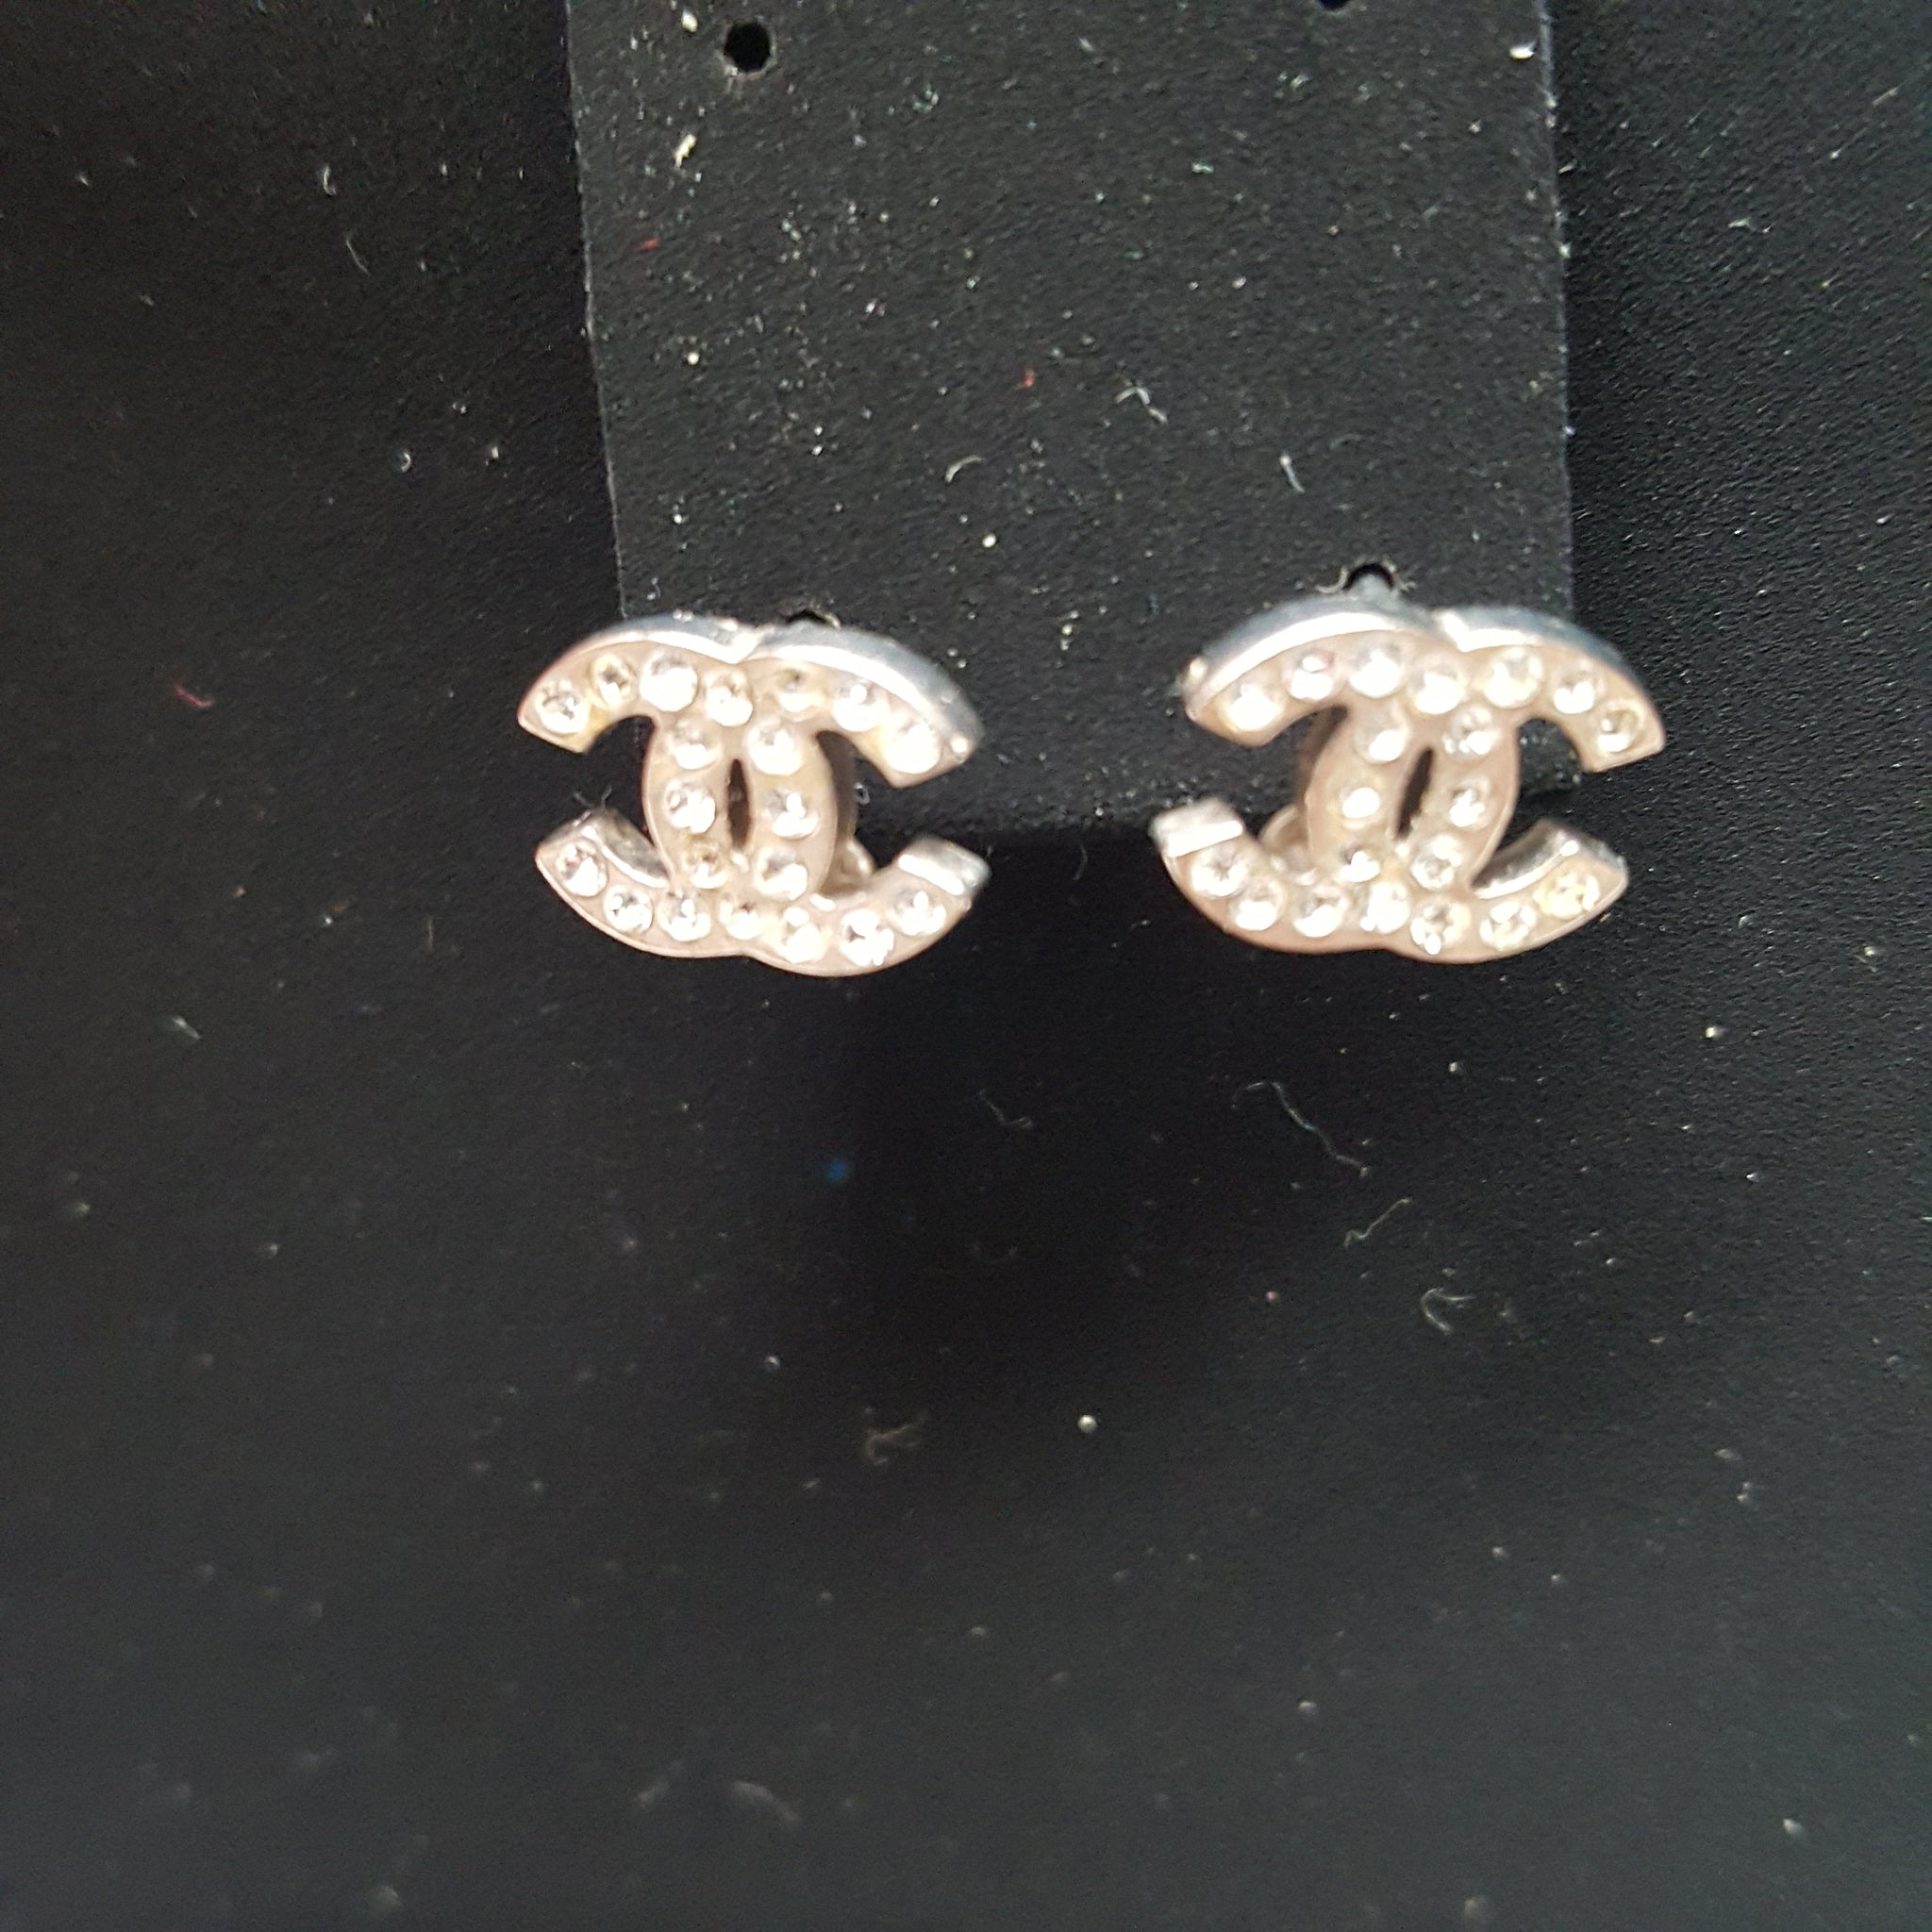 CHANEL CC TIMELESS CRYSTAL STUD EARRINGS - SMALL